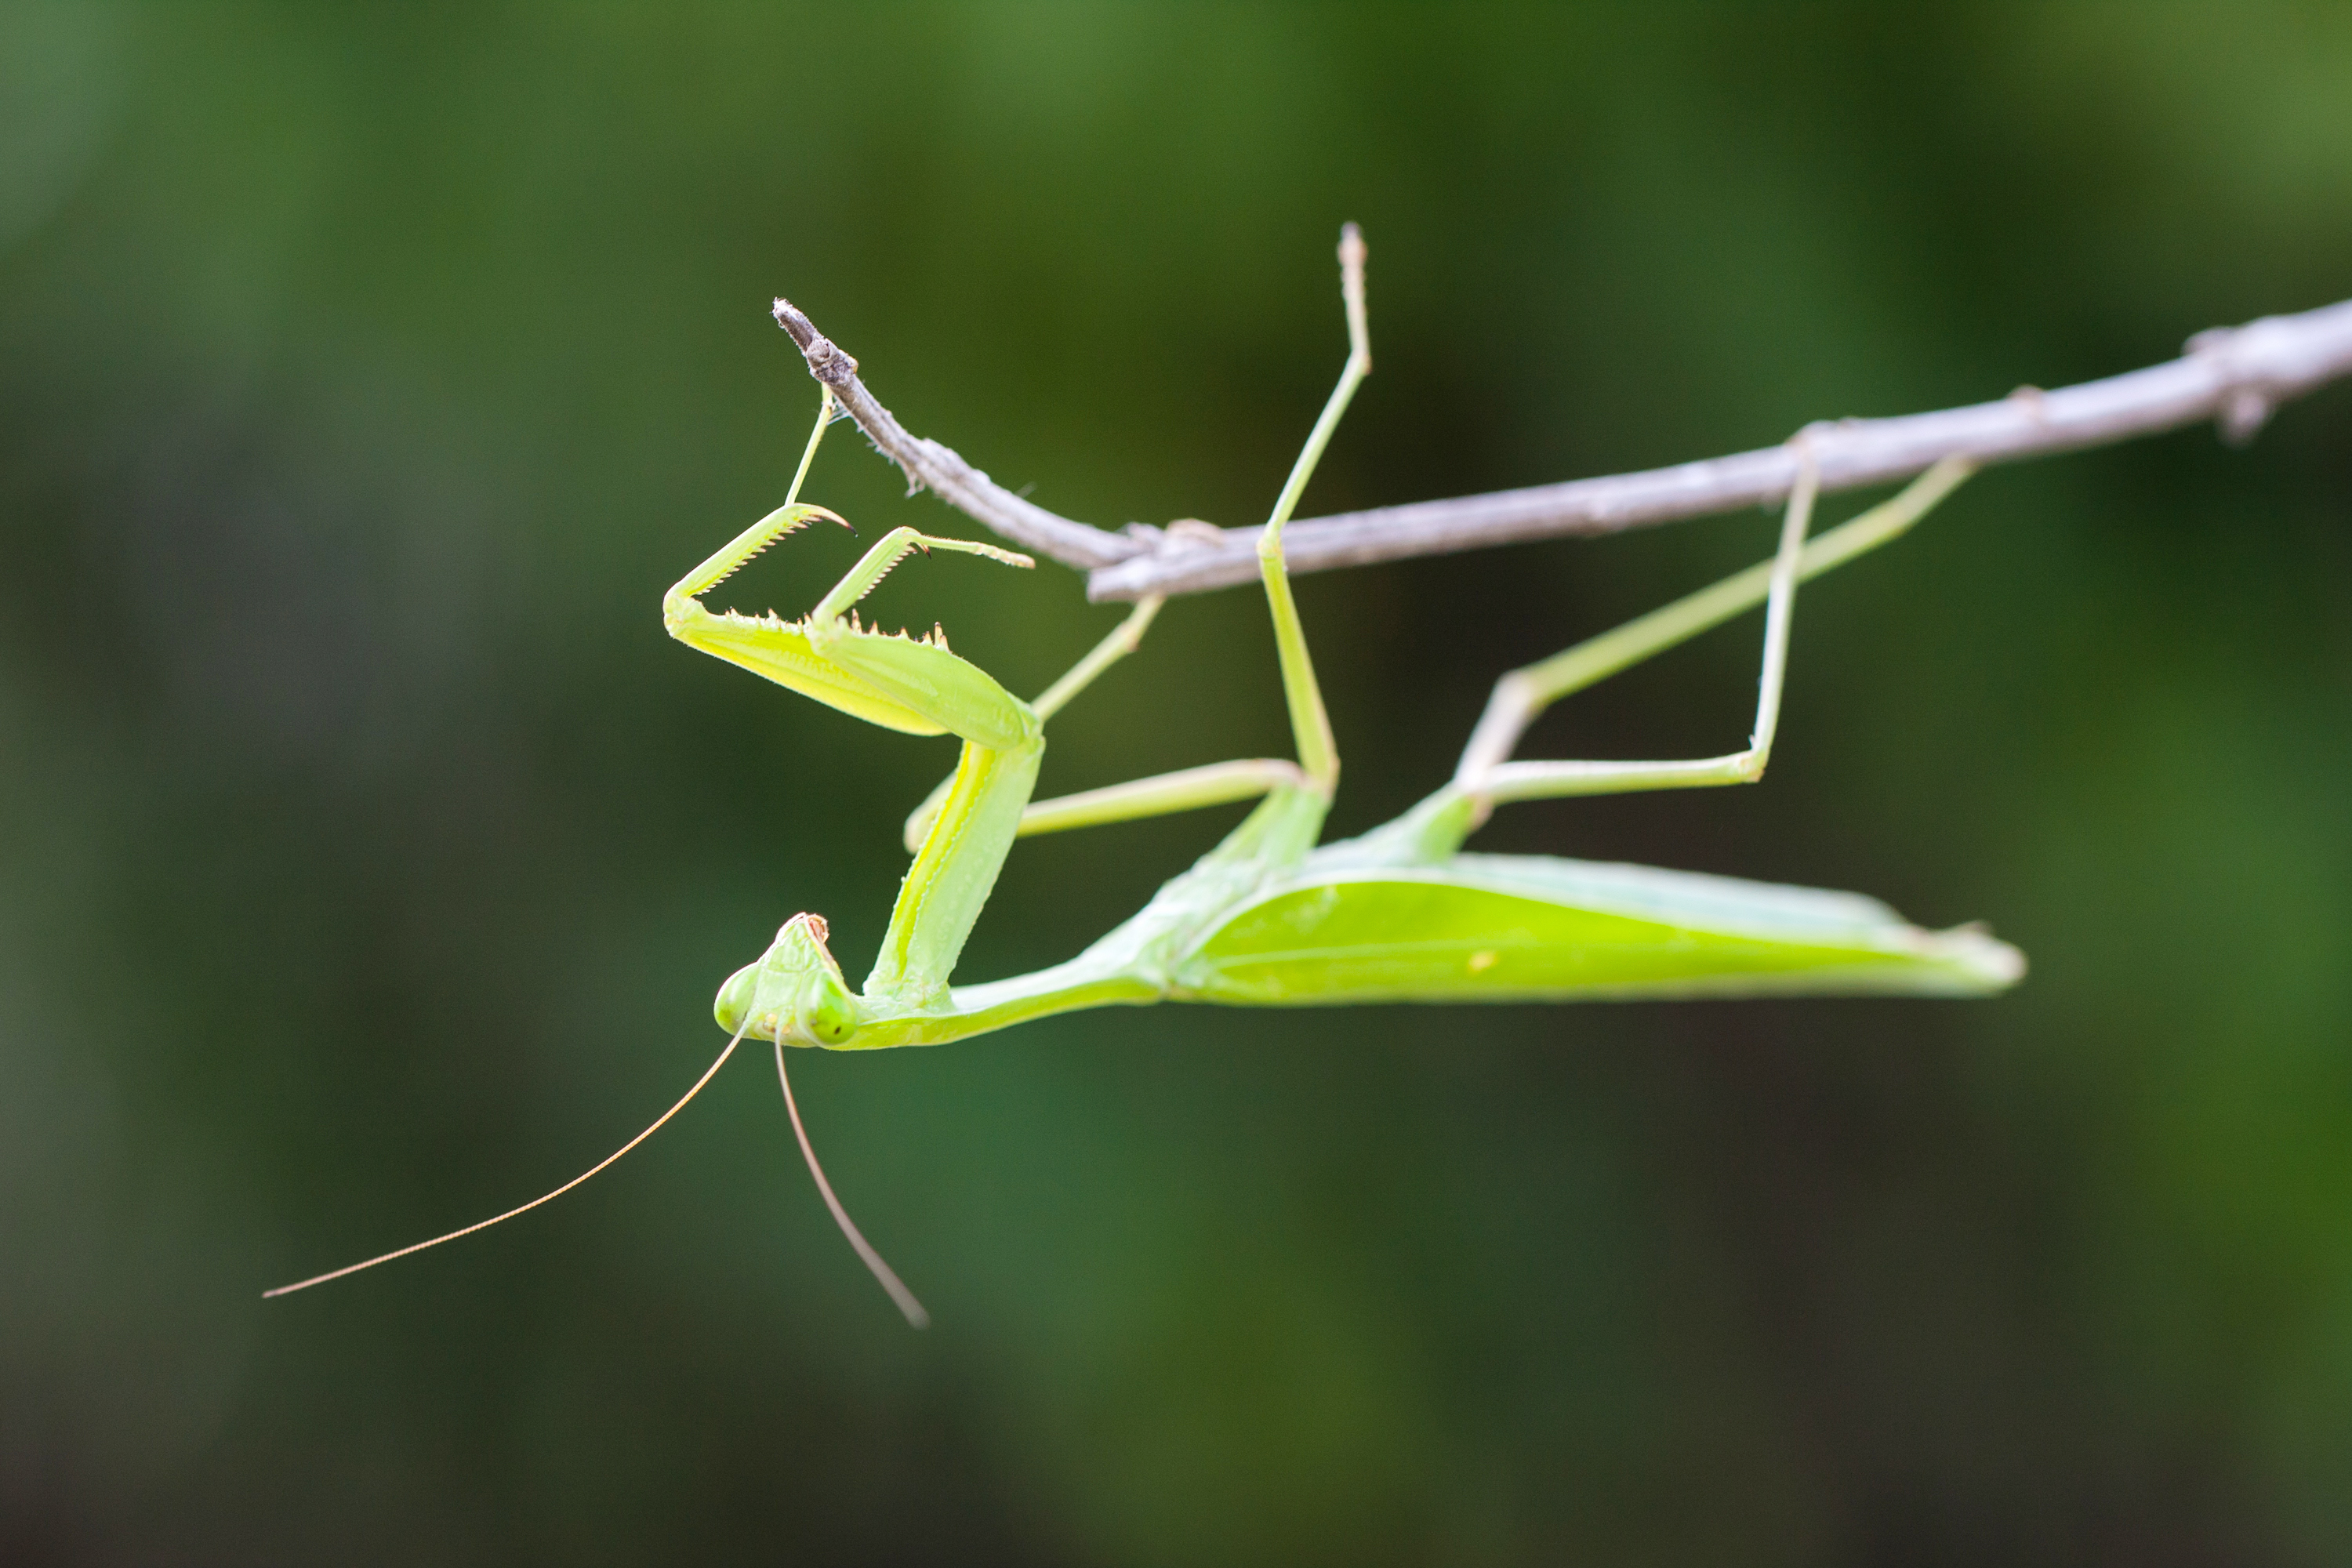 Insects in the garden will be discussed at the next meeting of the Hamburg Garden Club.